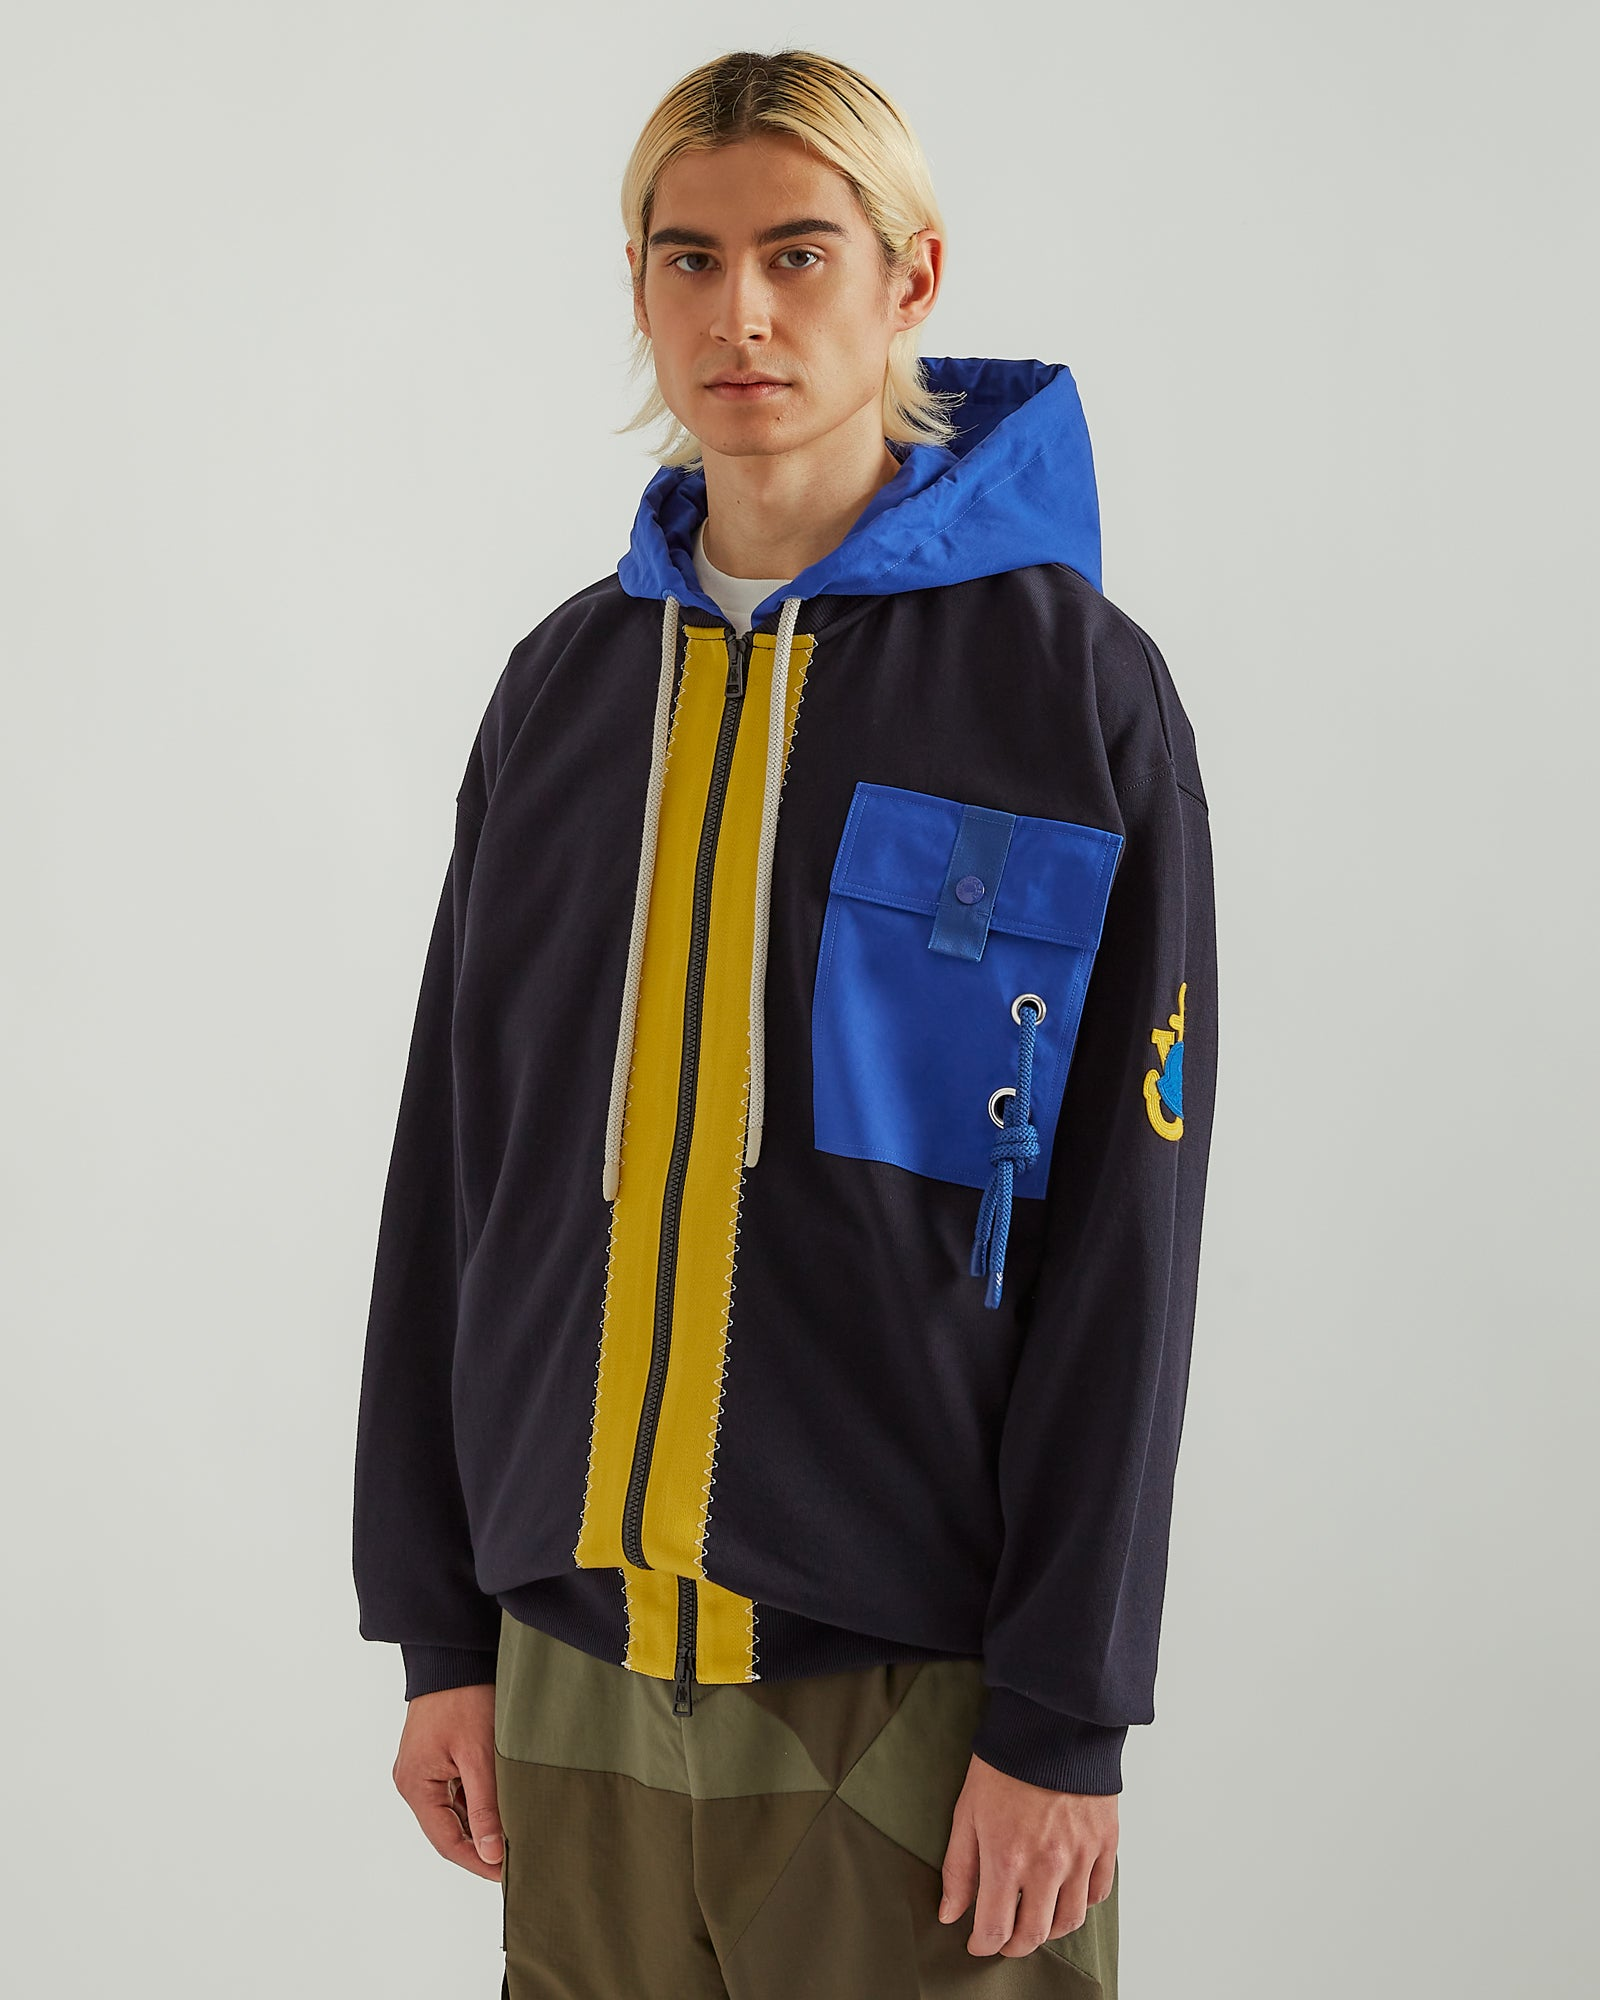 1Moncler JW Anderson Zip Up Hoodie in Navy